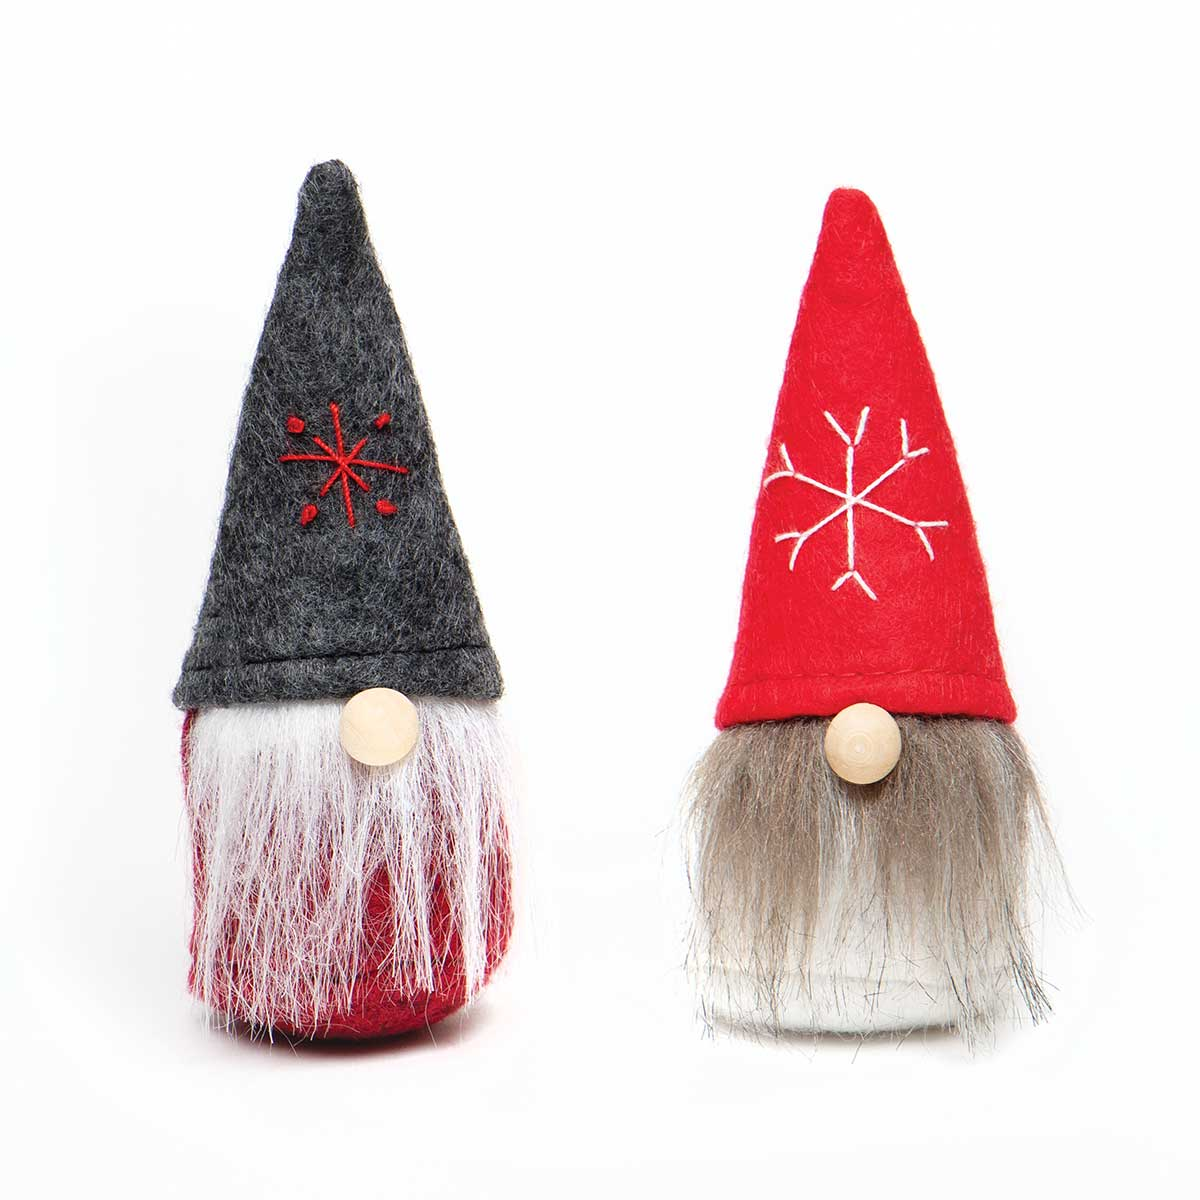 WEE GNOME ORNAMENT RED/GREY WITH STAR/SNOWFLAKE